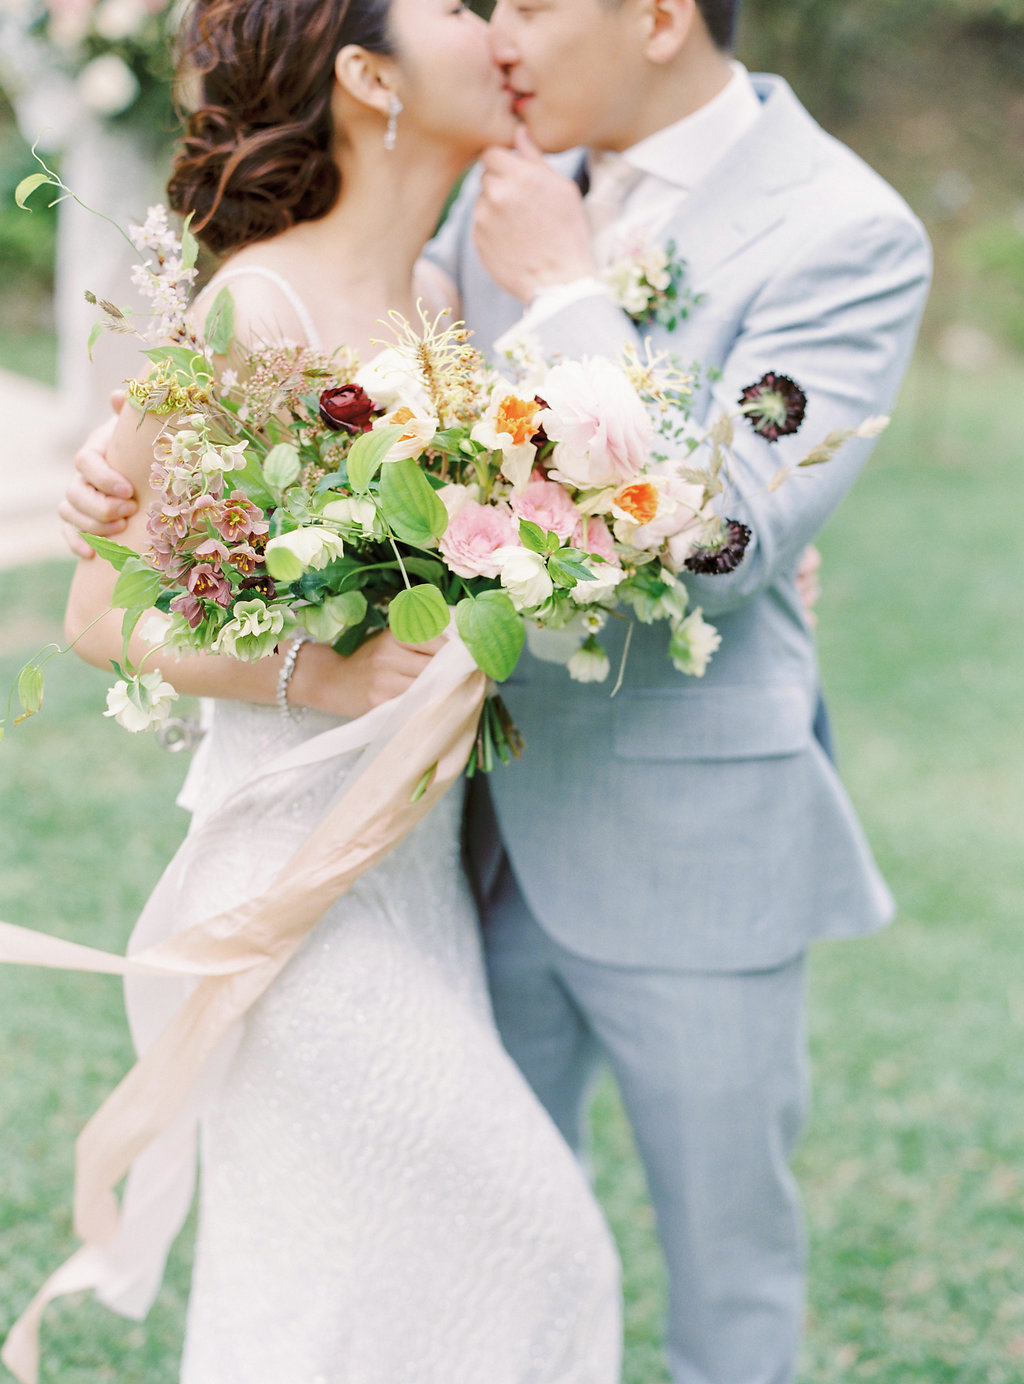 SPRING ROMANCE EDITORIAL STYLED SHOOT   Photography by Jenny Tong Fine Art Photography